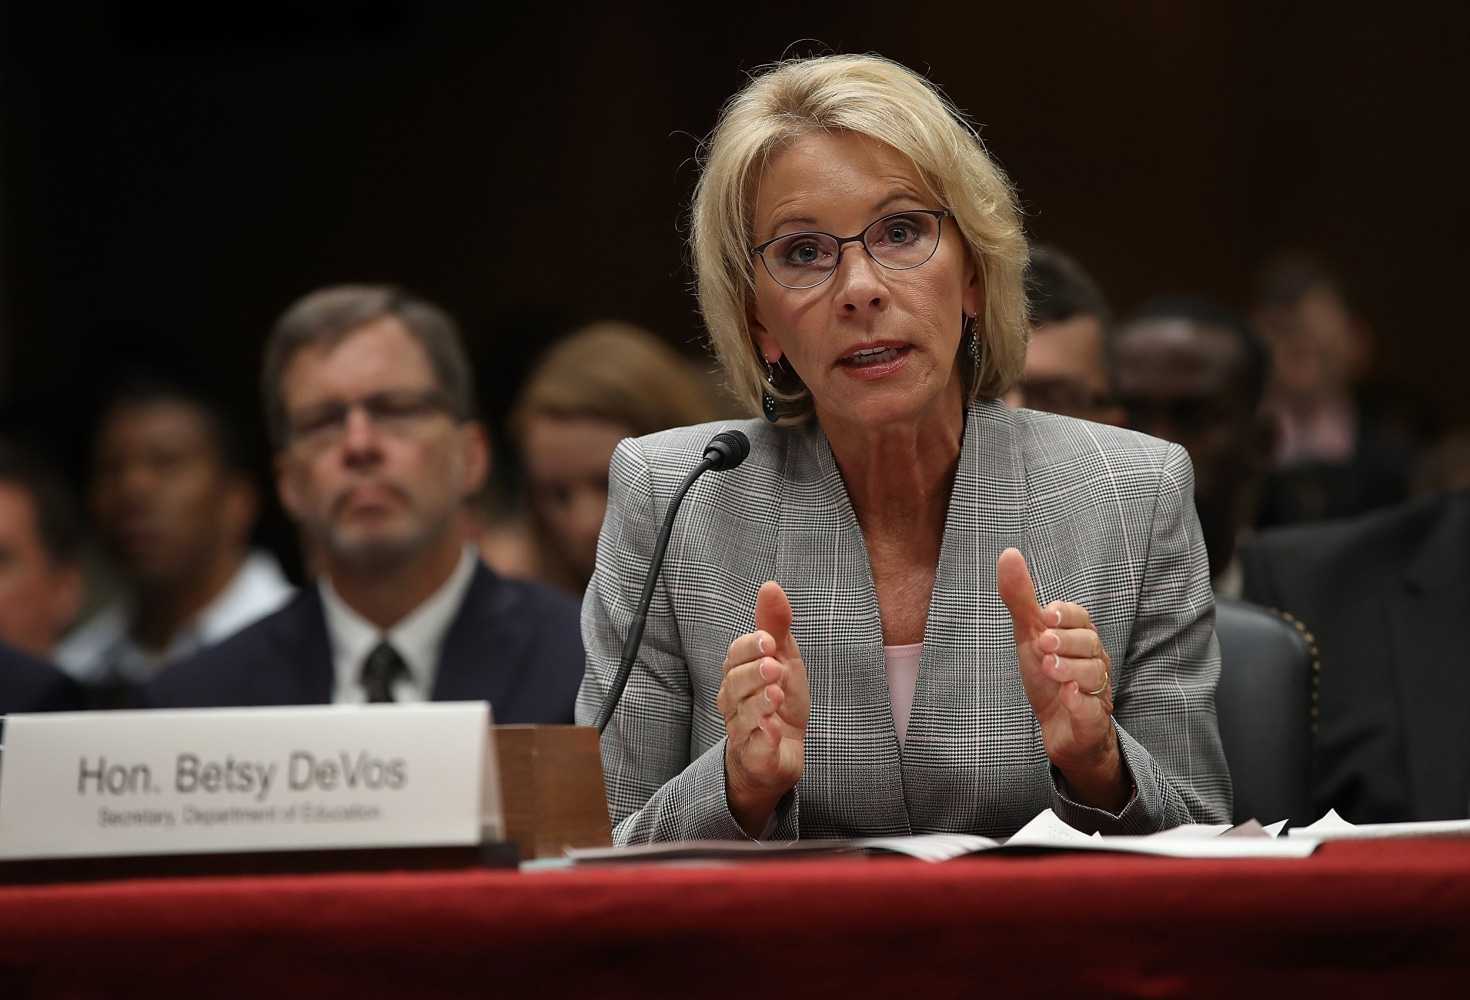 Betsy DeVos Sued After Announcing Plans To Roll Back Student Loan Protections